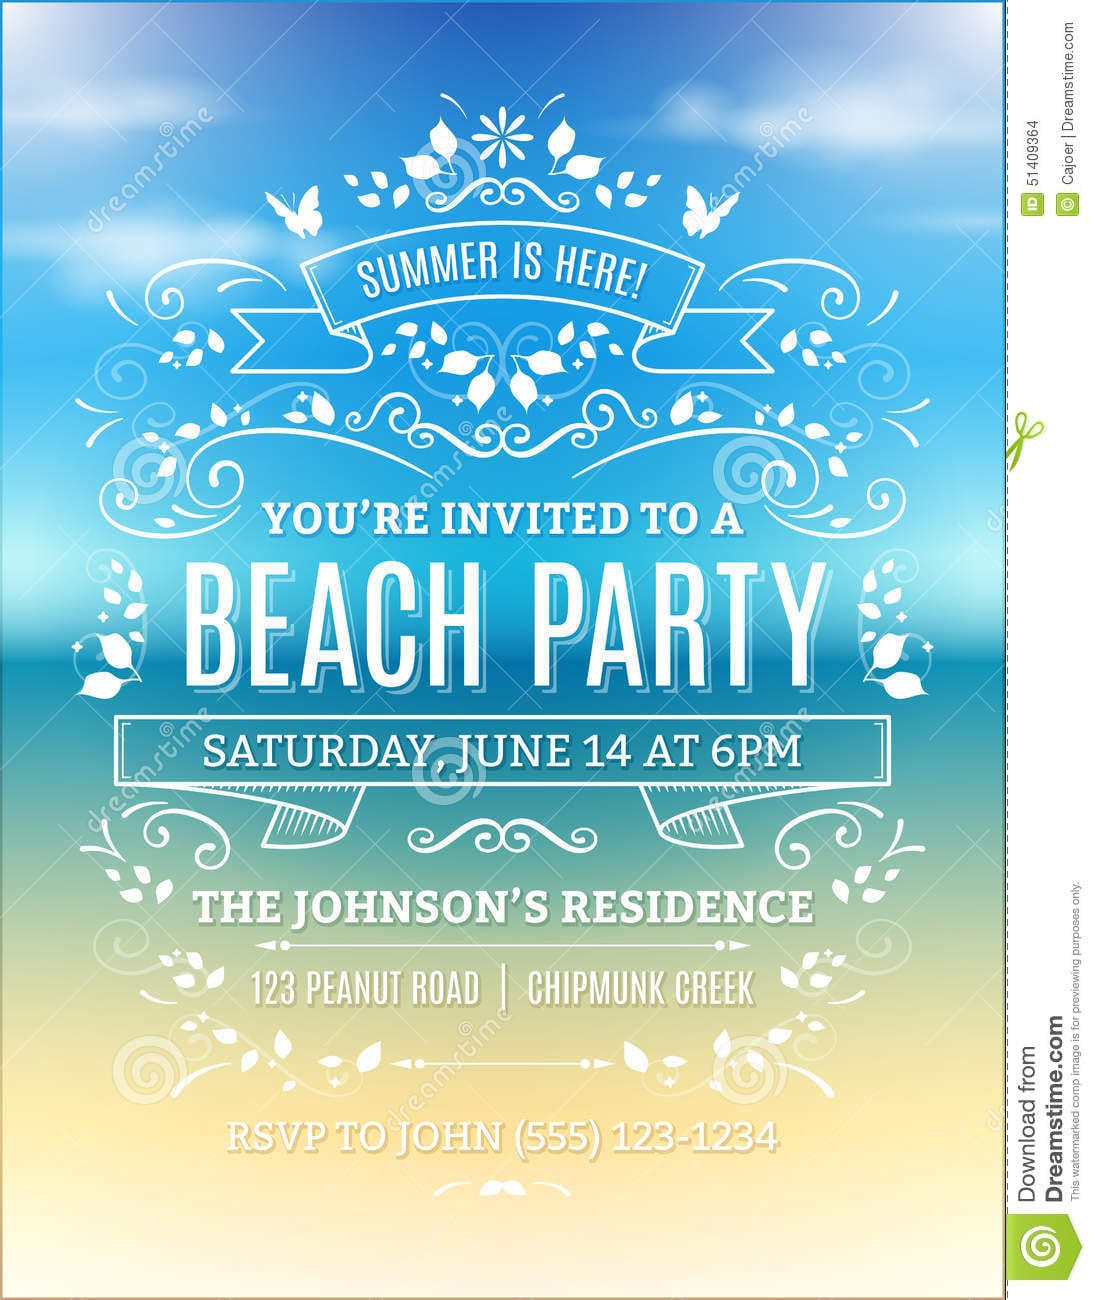 Brave Beach Party Invitation Background 11 Amid Cheap Article